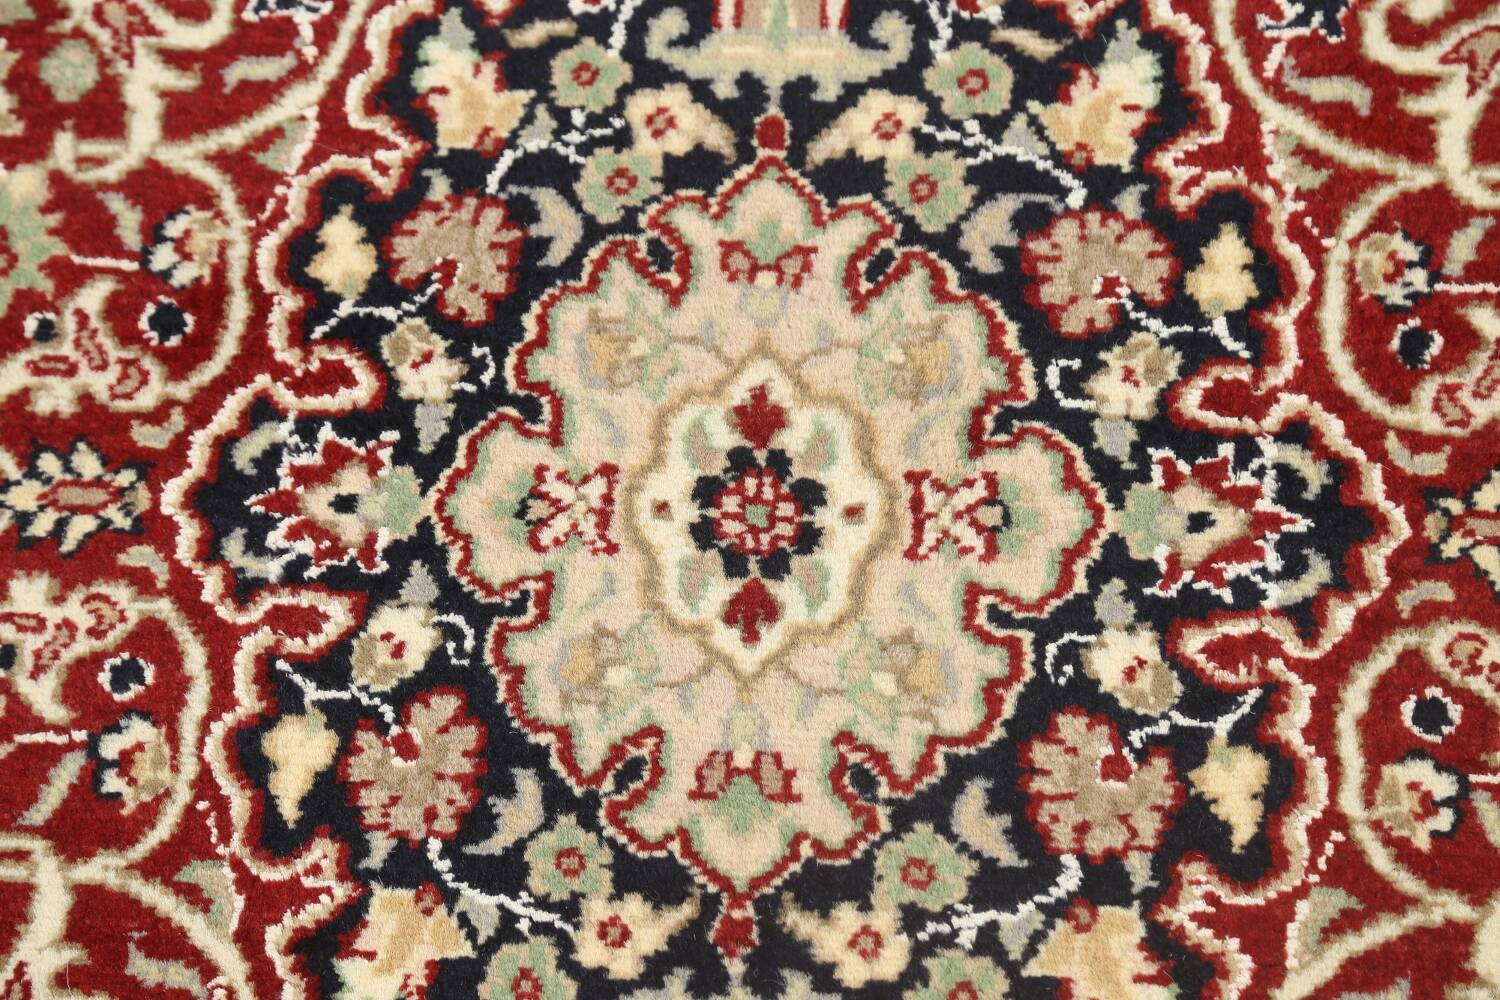 Vegetable Dye Floral Tabriz Oriental Area Rug 5x7 image 8